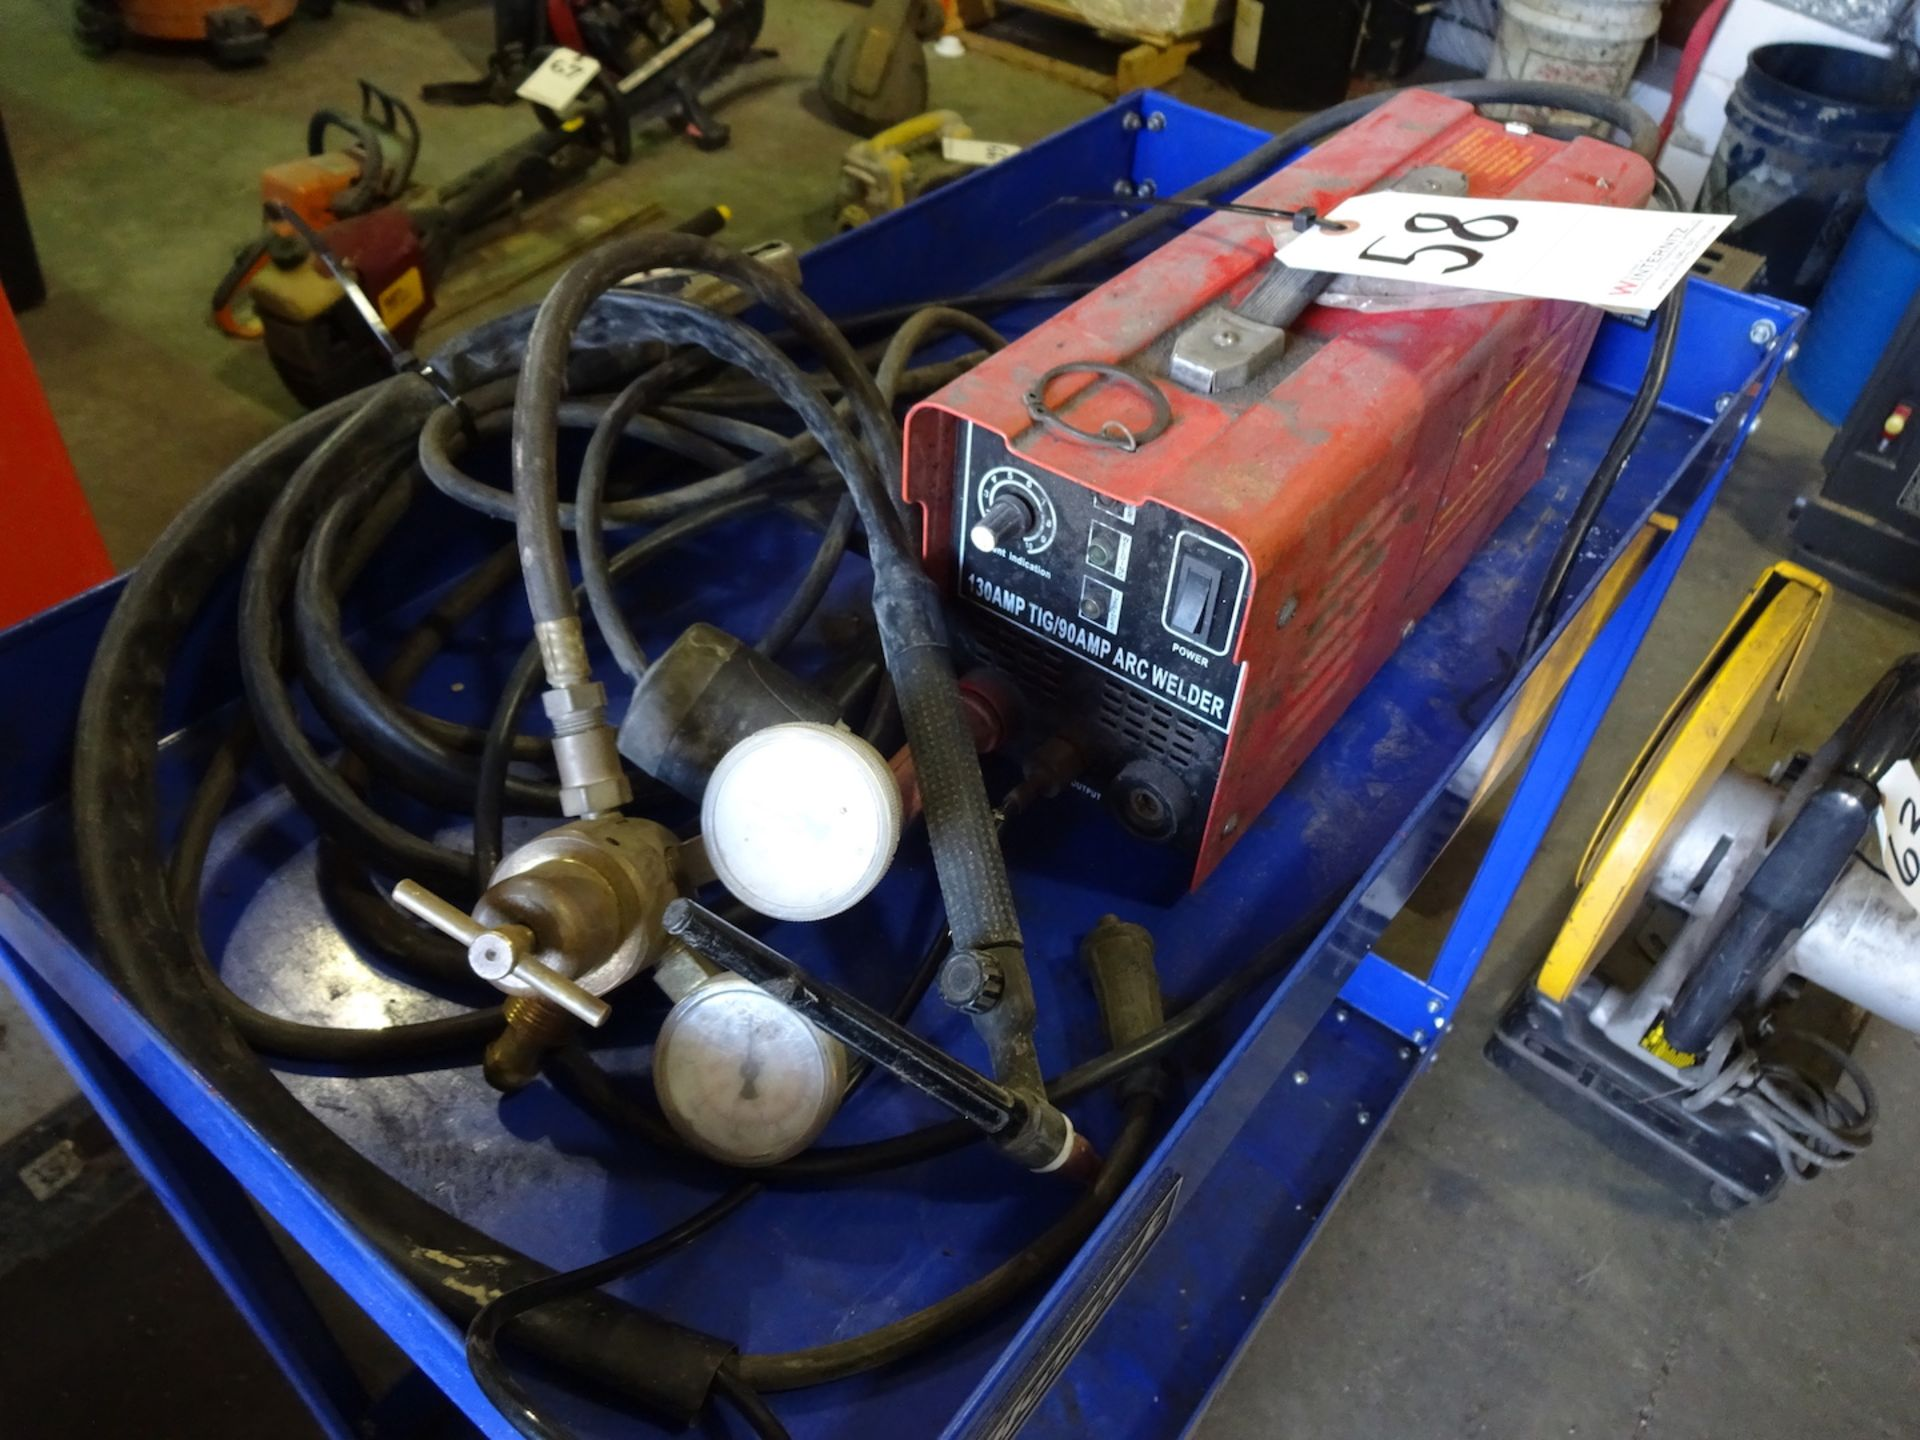 Lot 58 - CHICAGO ELECTRIC PORTABLE 130 AMP TIG/90 AMP ARC WELDER, #91811